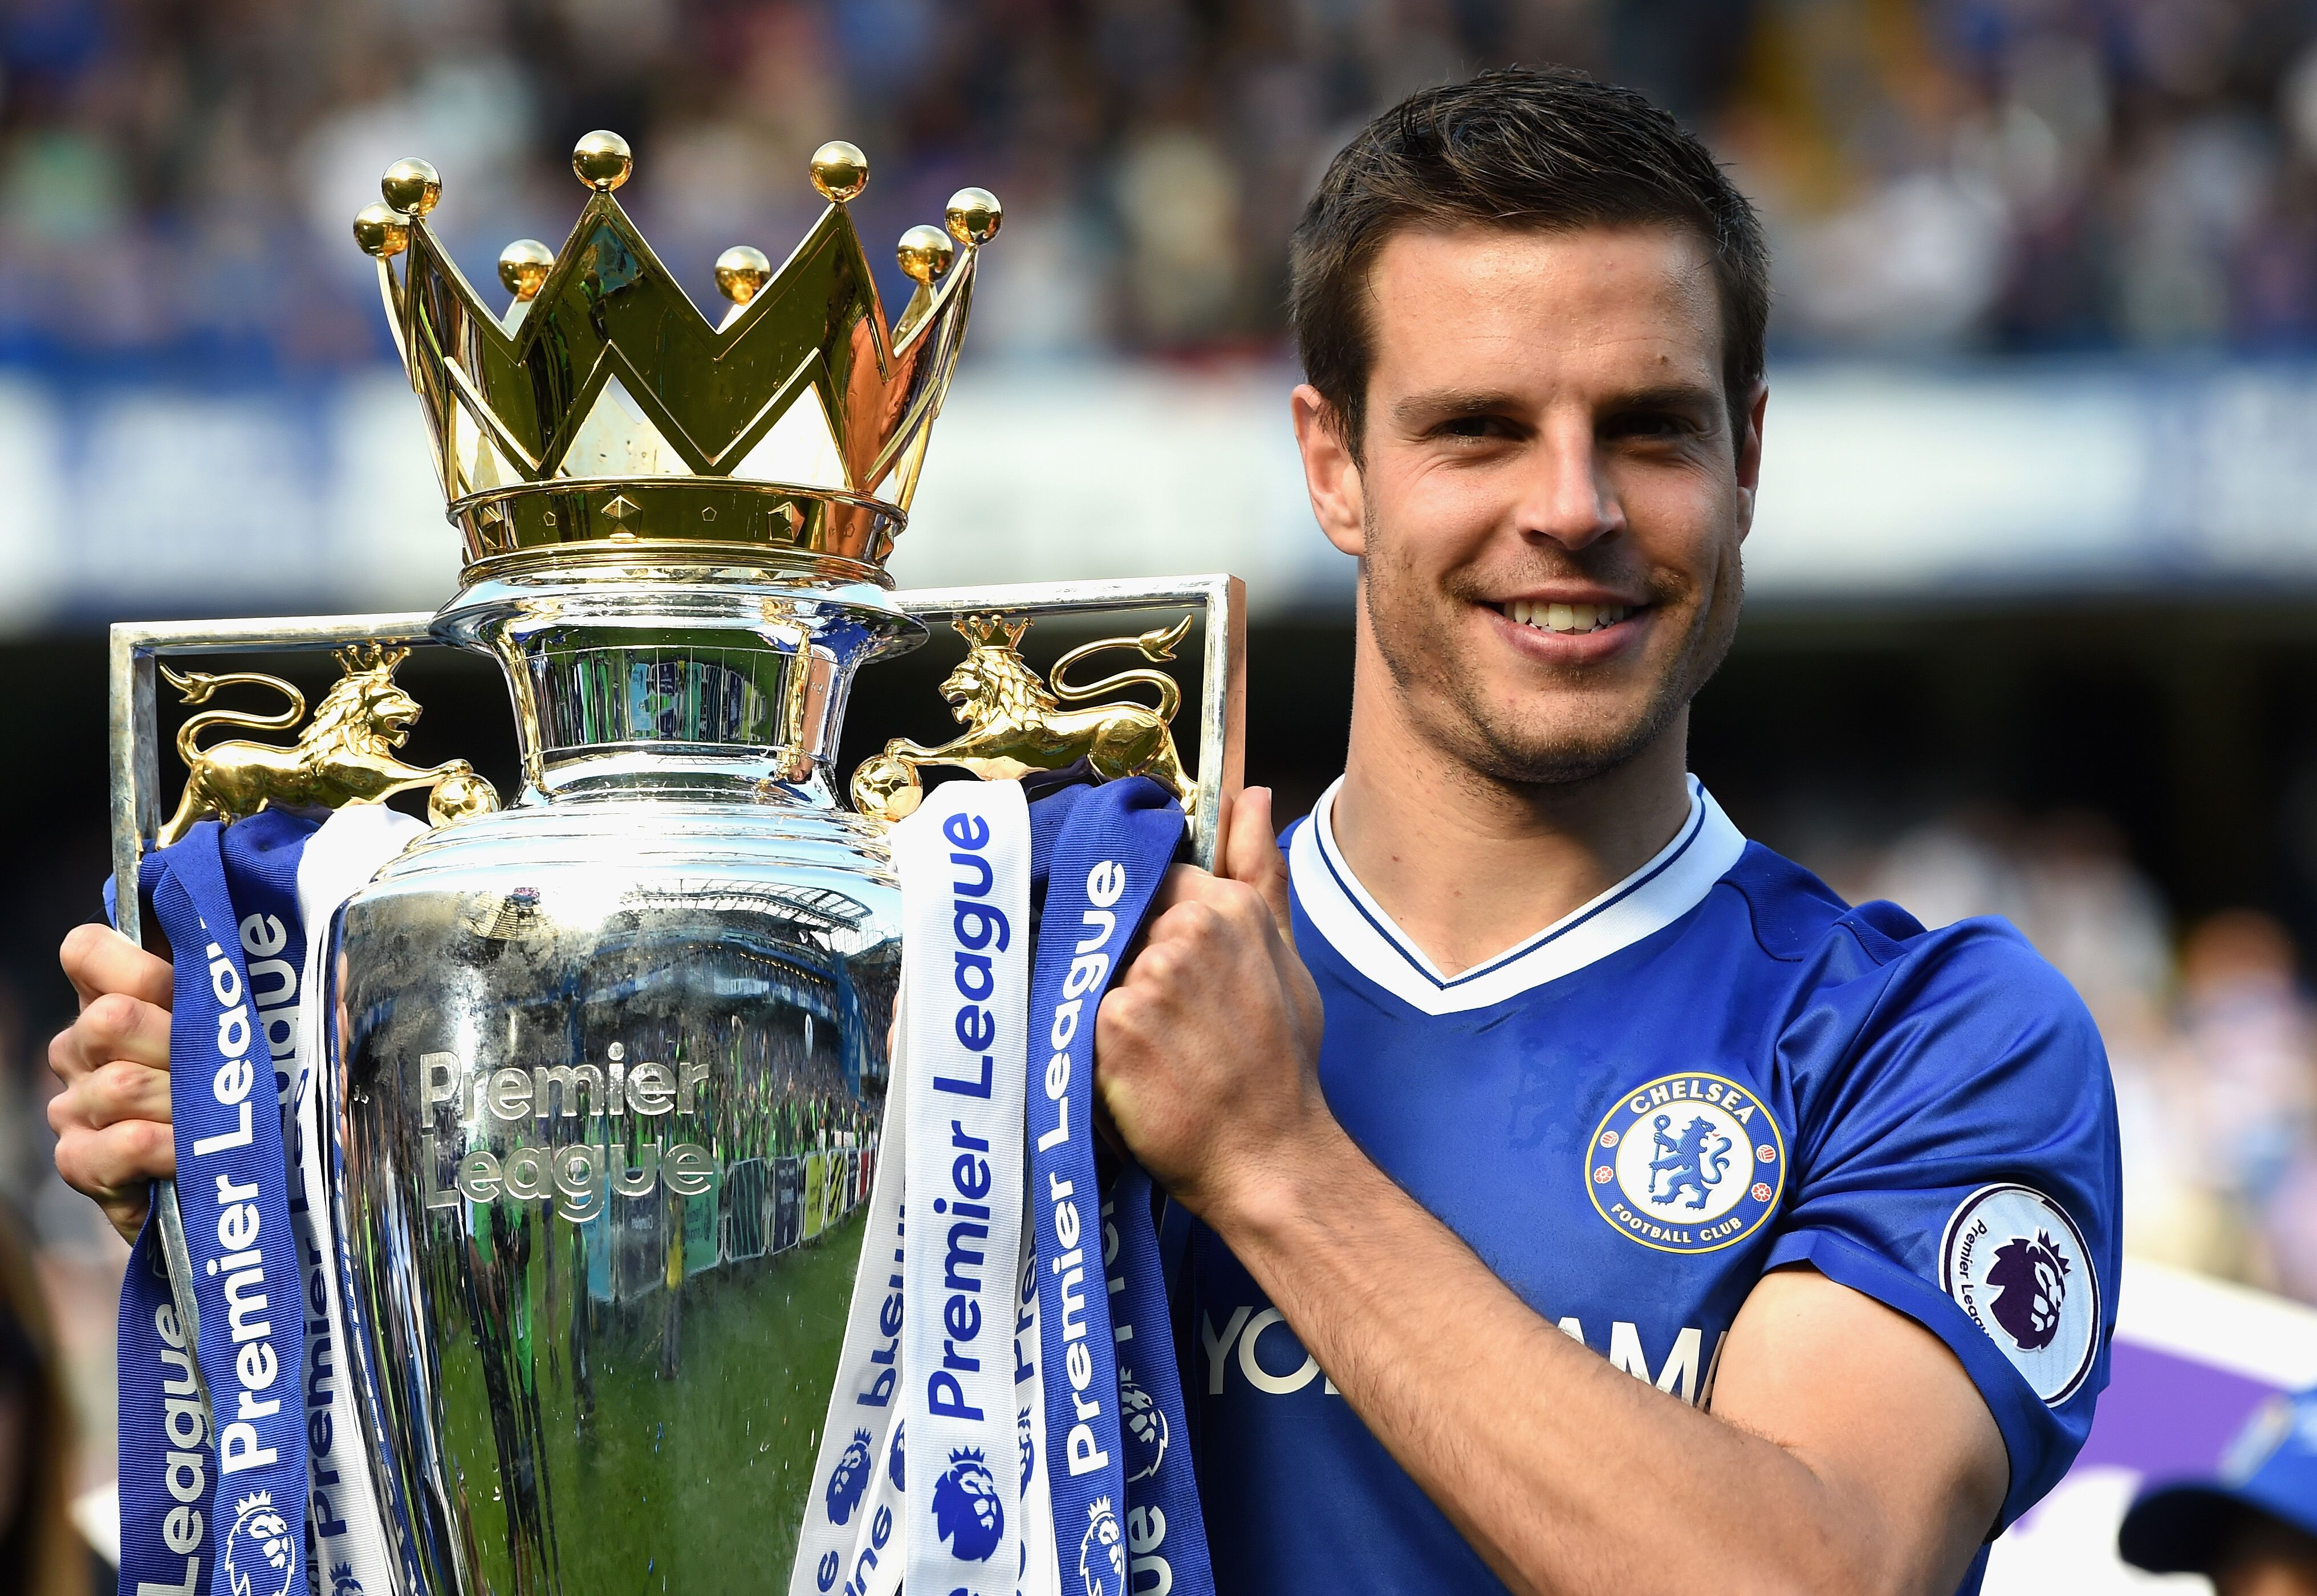 Chelsea player preview Cesar Azpilicueta swiss army knives and